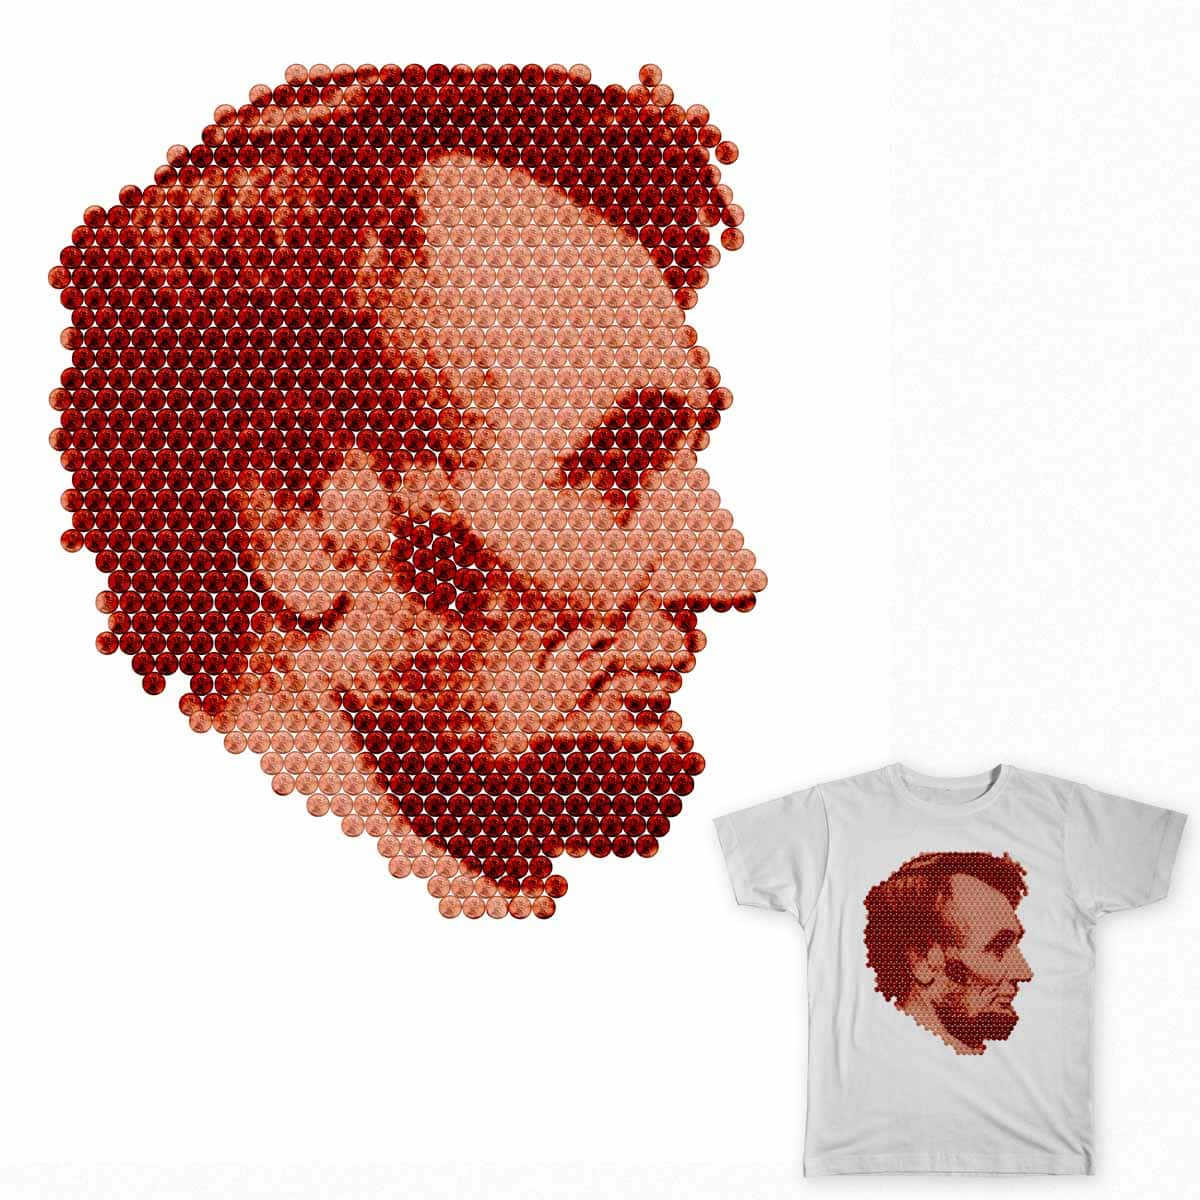 Abraham Penny by robthebarber7 on Threadless